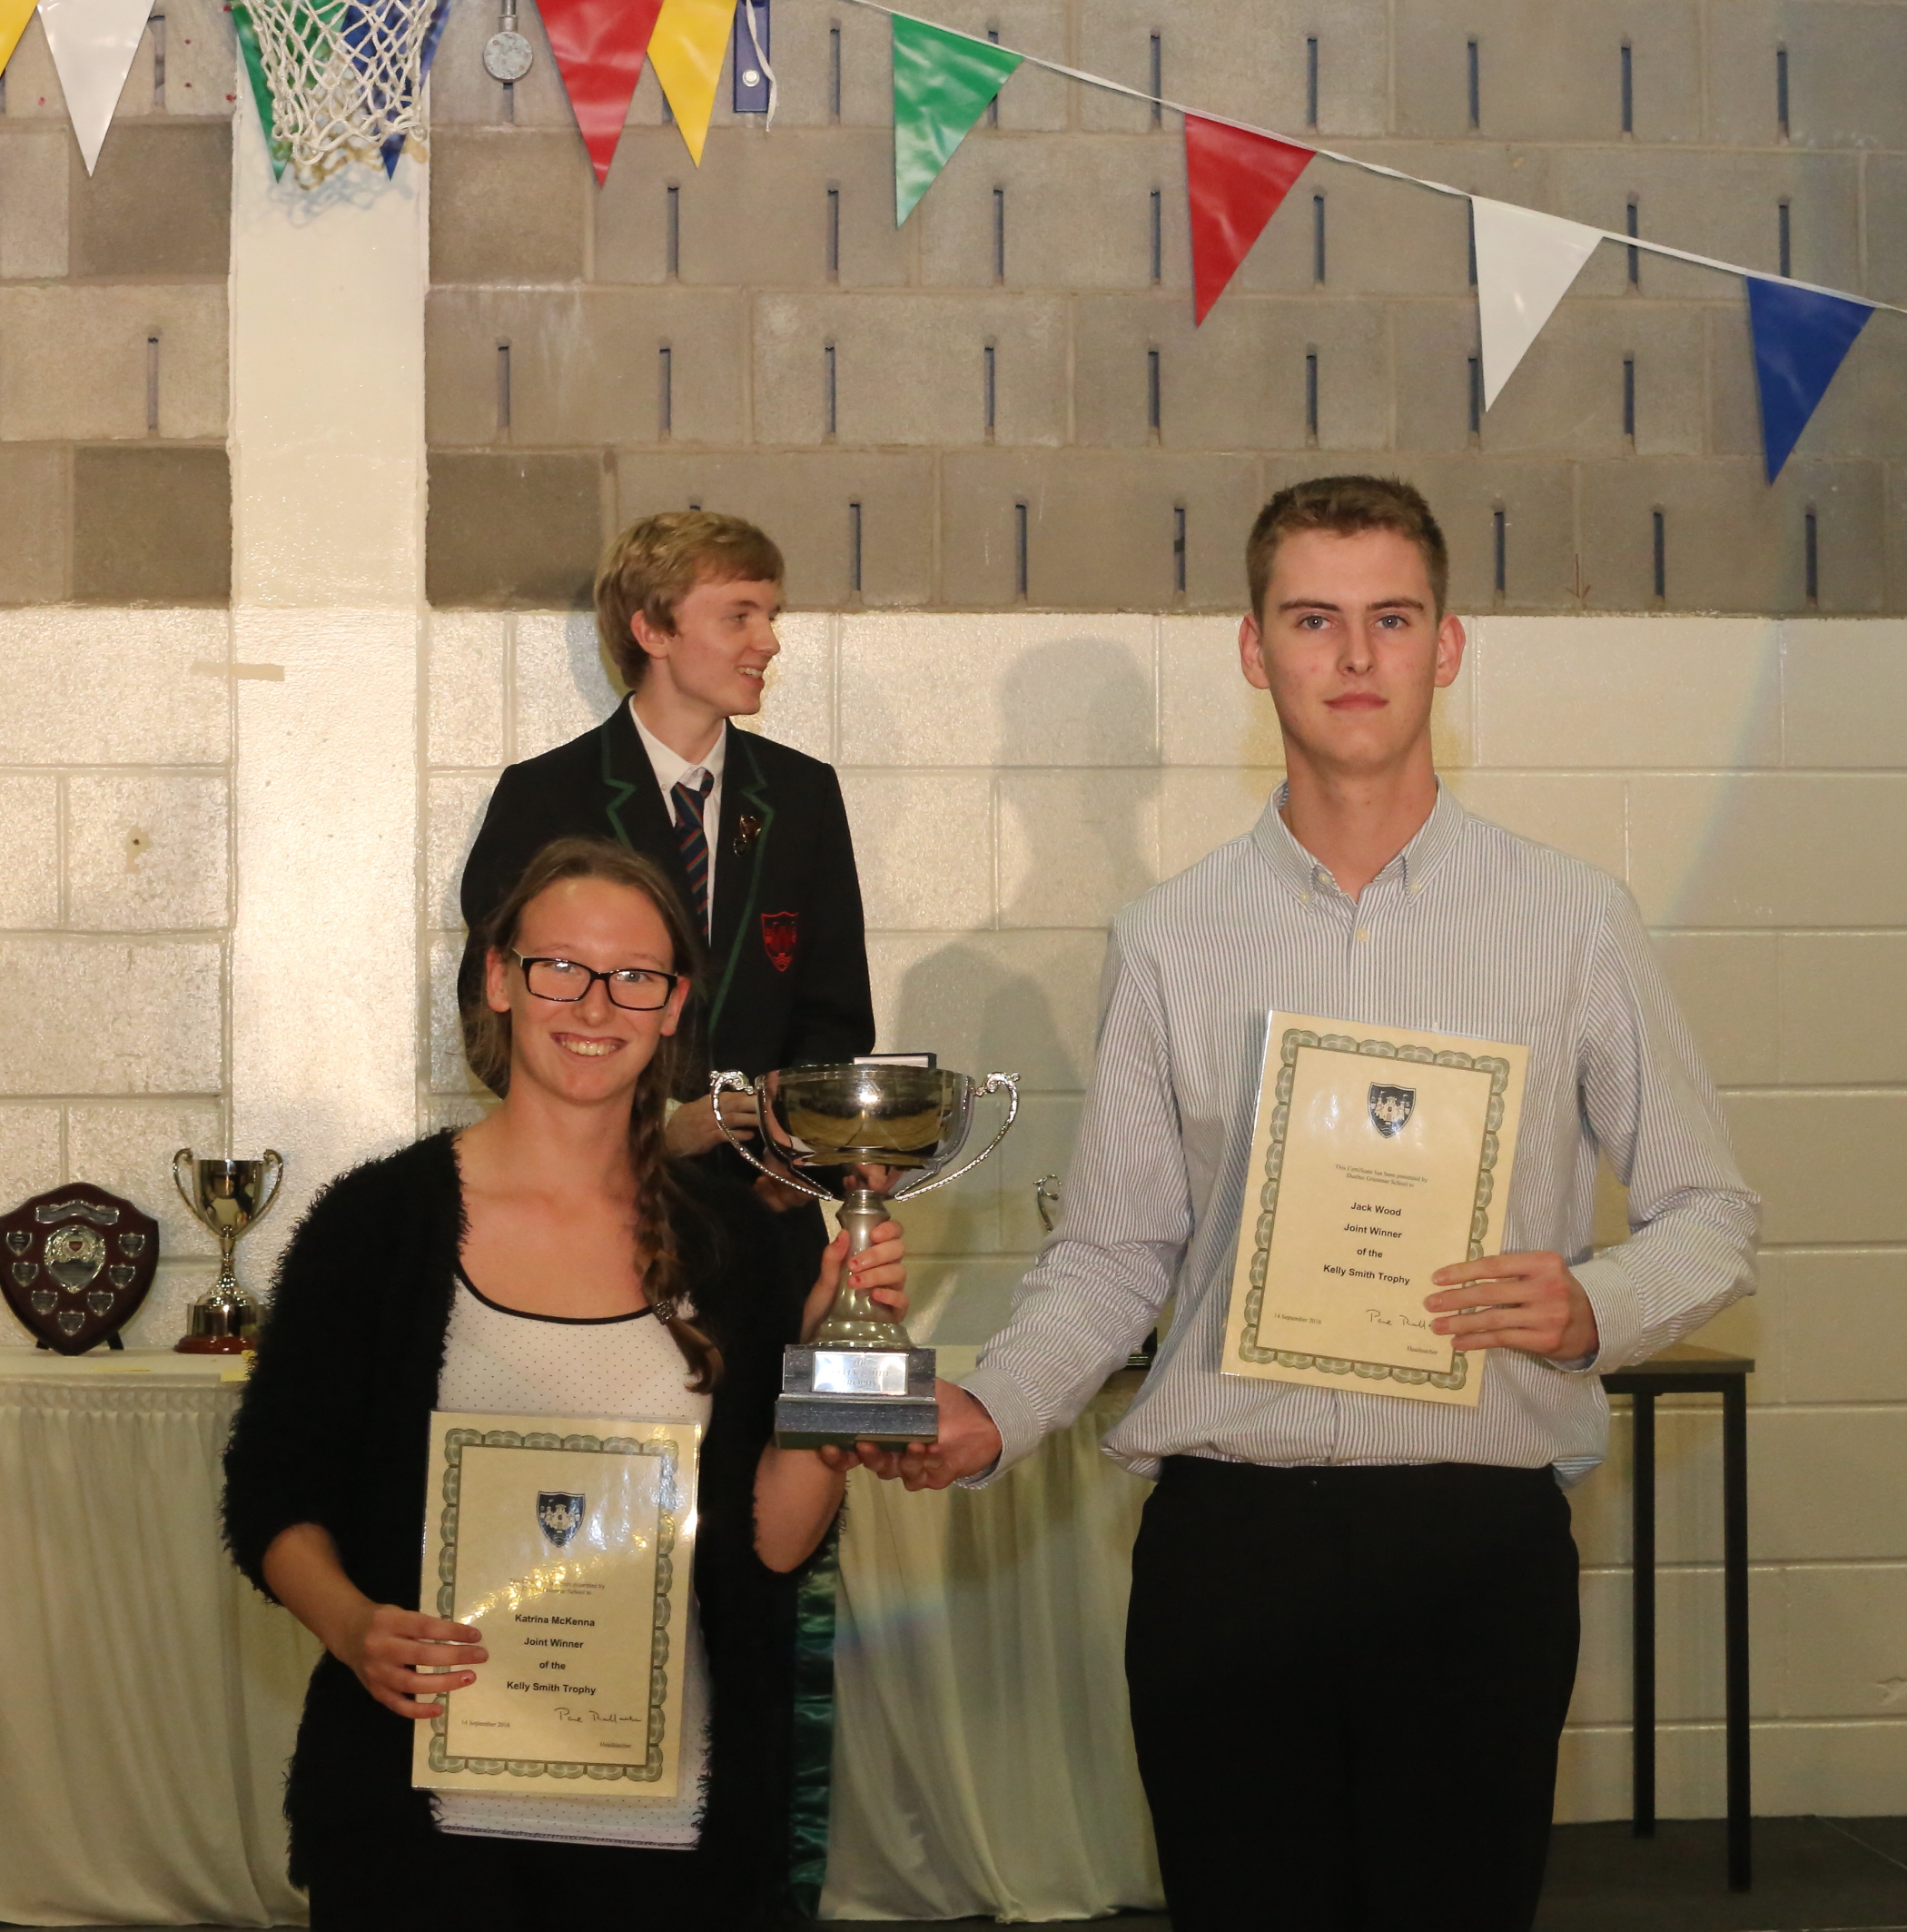 Dunbar Grammar School prizegiving: results and gallery (From East Lothian Courier)